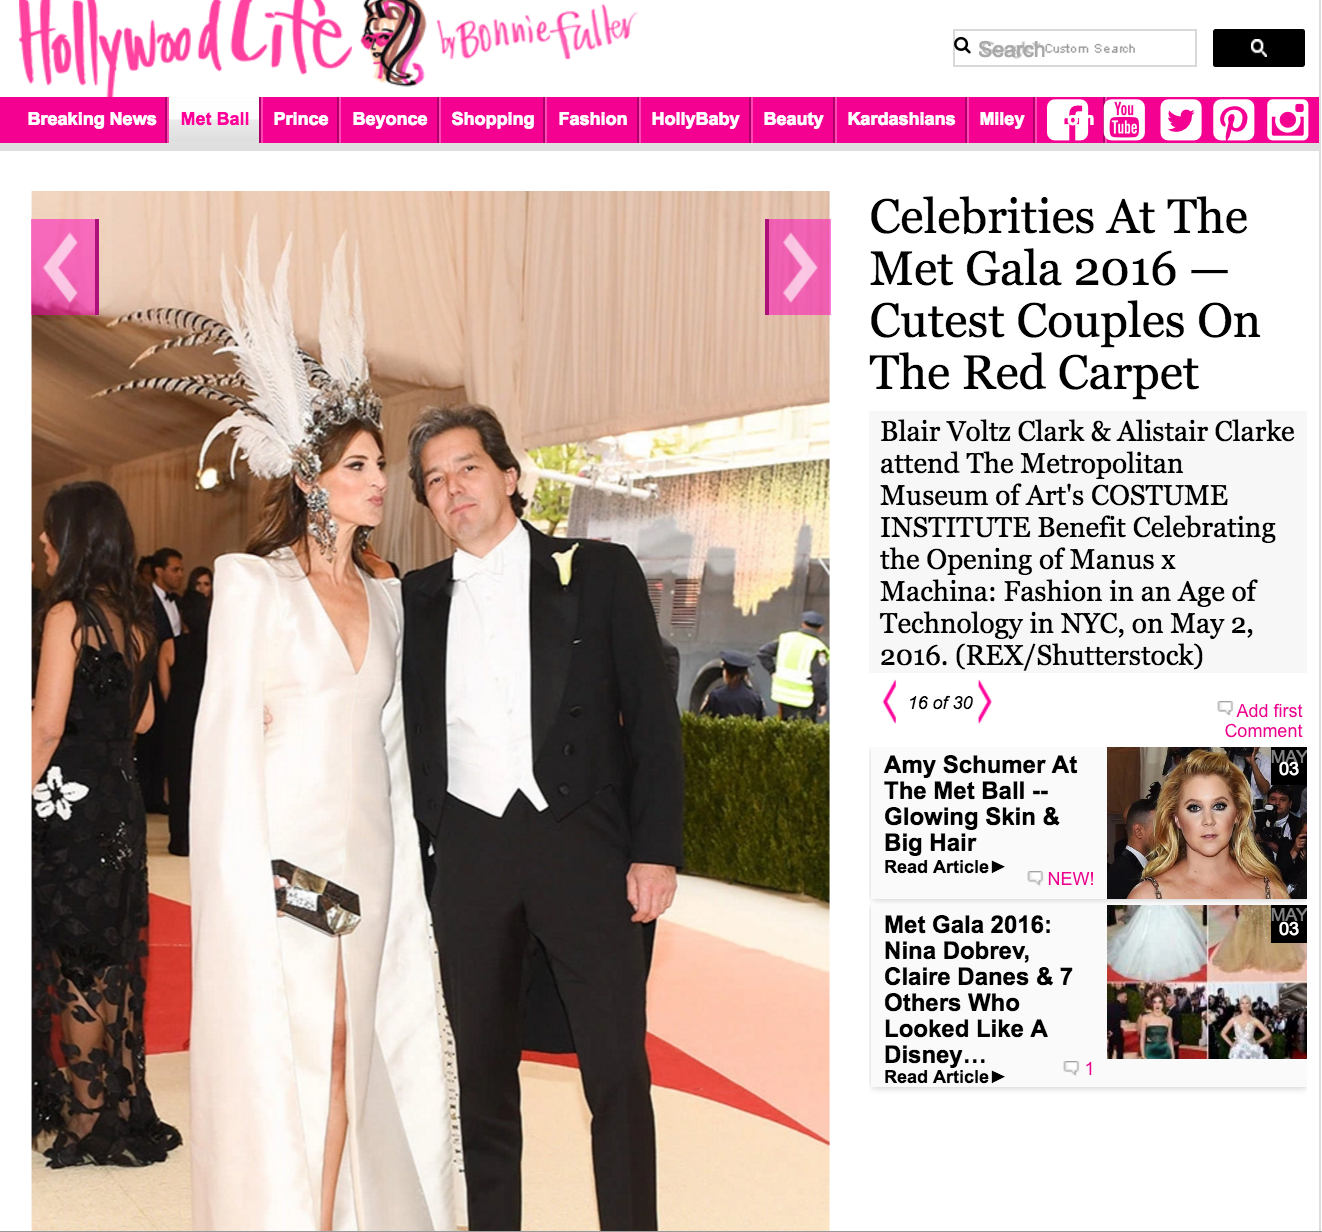 Met Gala 2016 - Hollywood Life screenshot.png